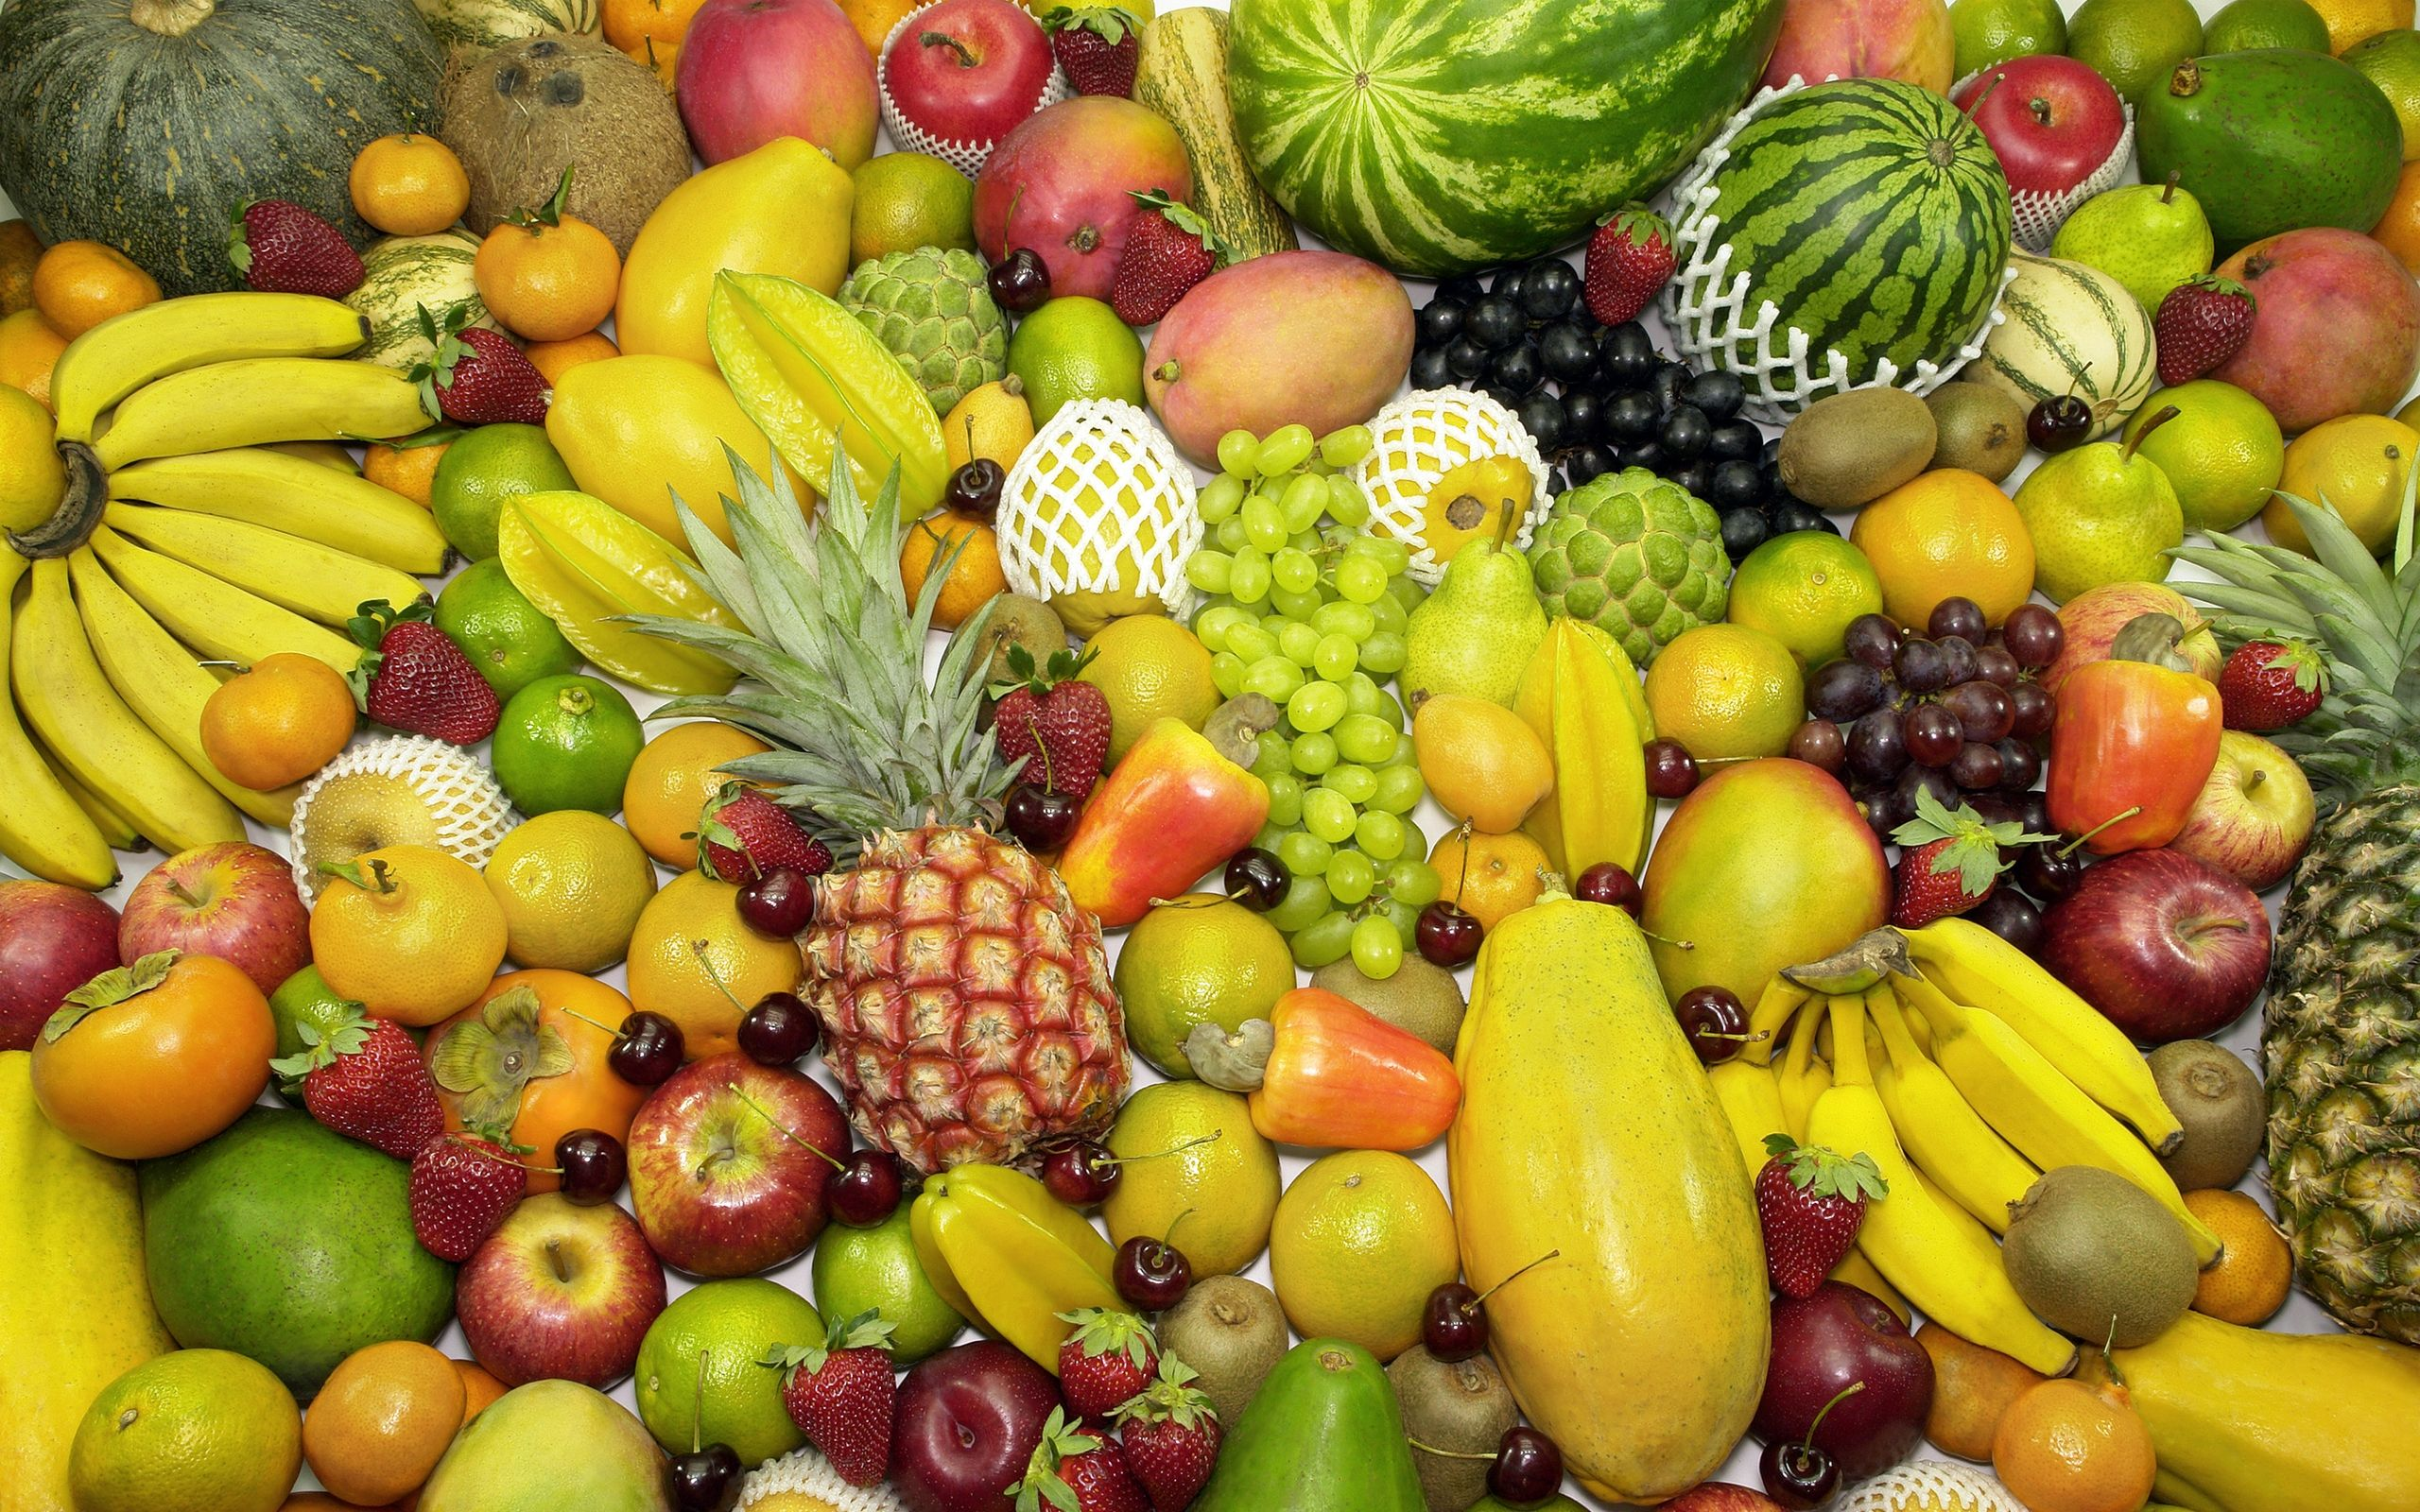 Fresh fruit wallpaper - Fruits Wallpaper Hd Find Best Latest Fruits Wallpaper Hd For Your Pc Desktop Background And